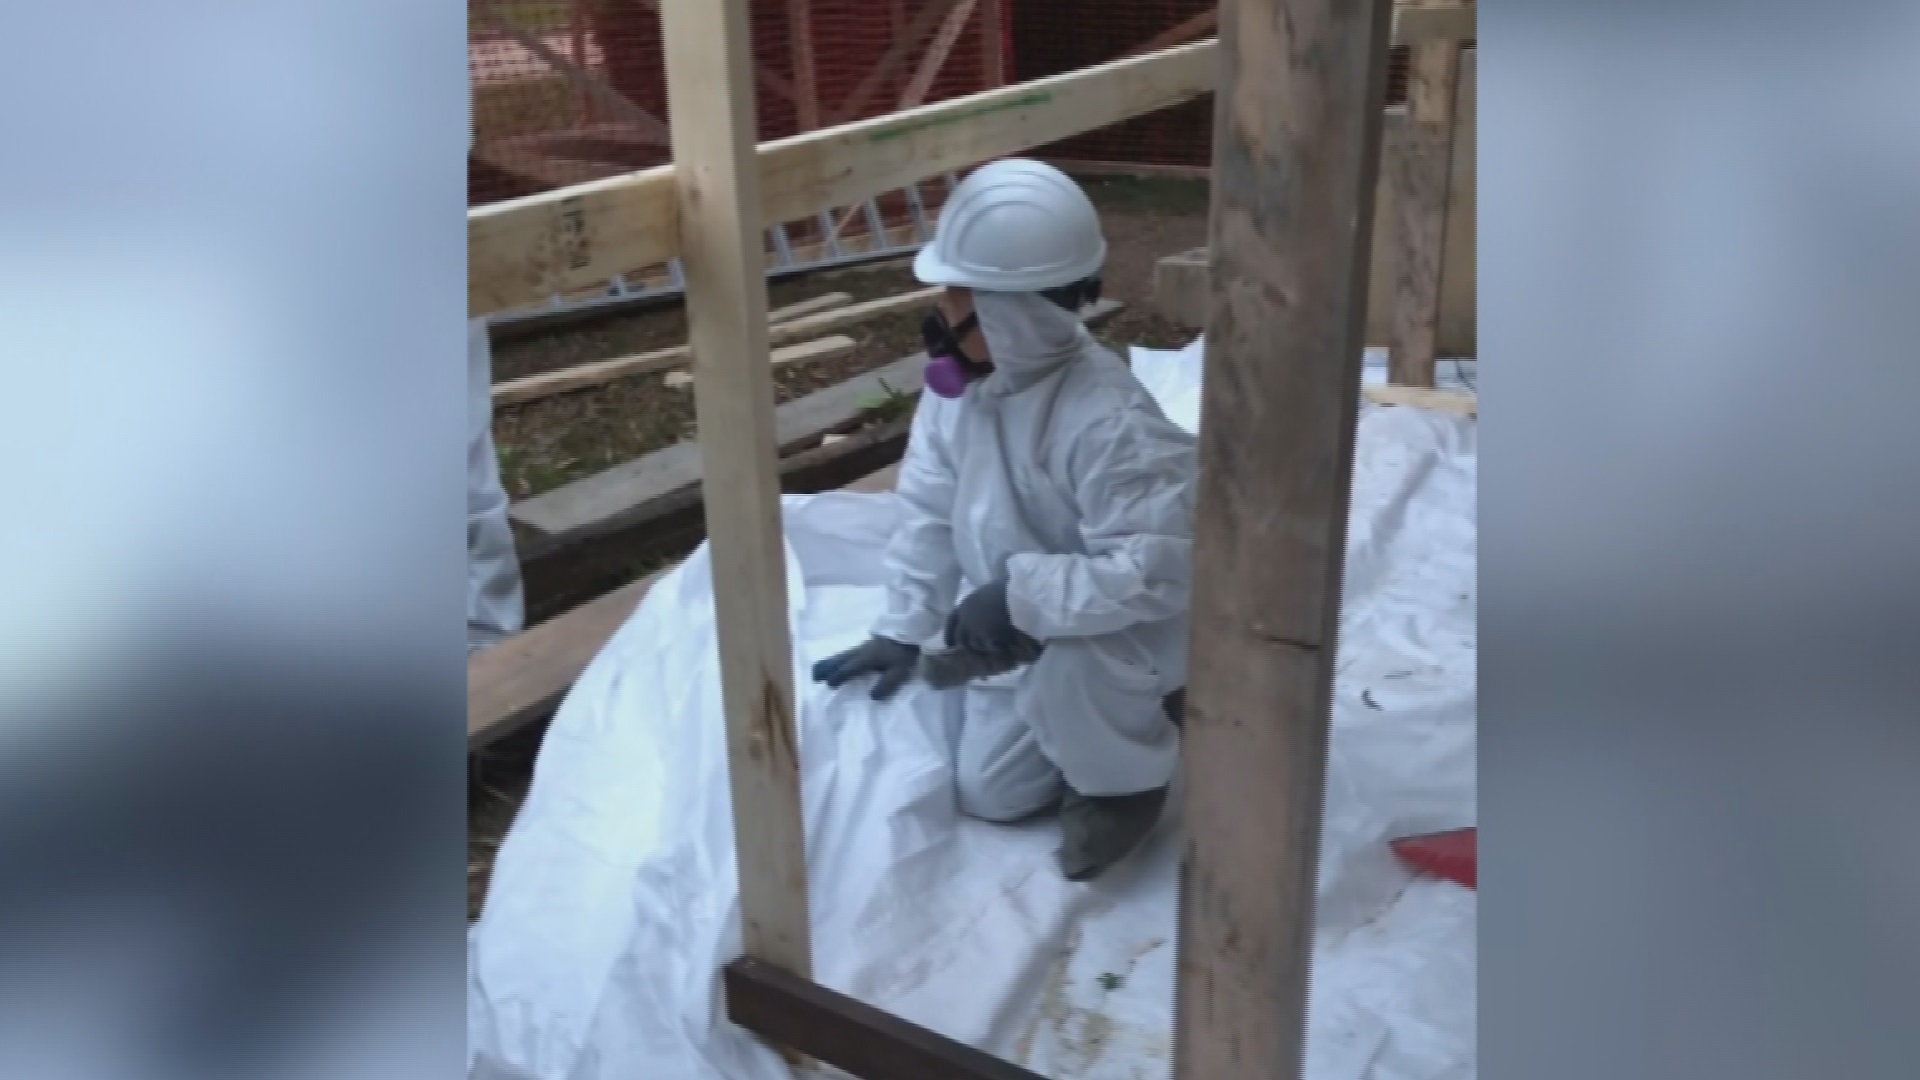 Concerns raised about asbestos abatement work at Vancouver renovation site